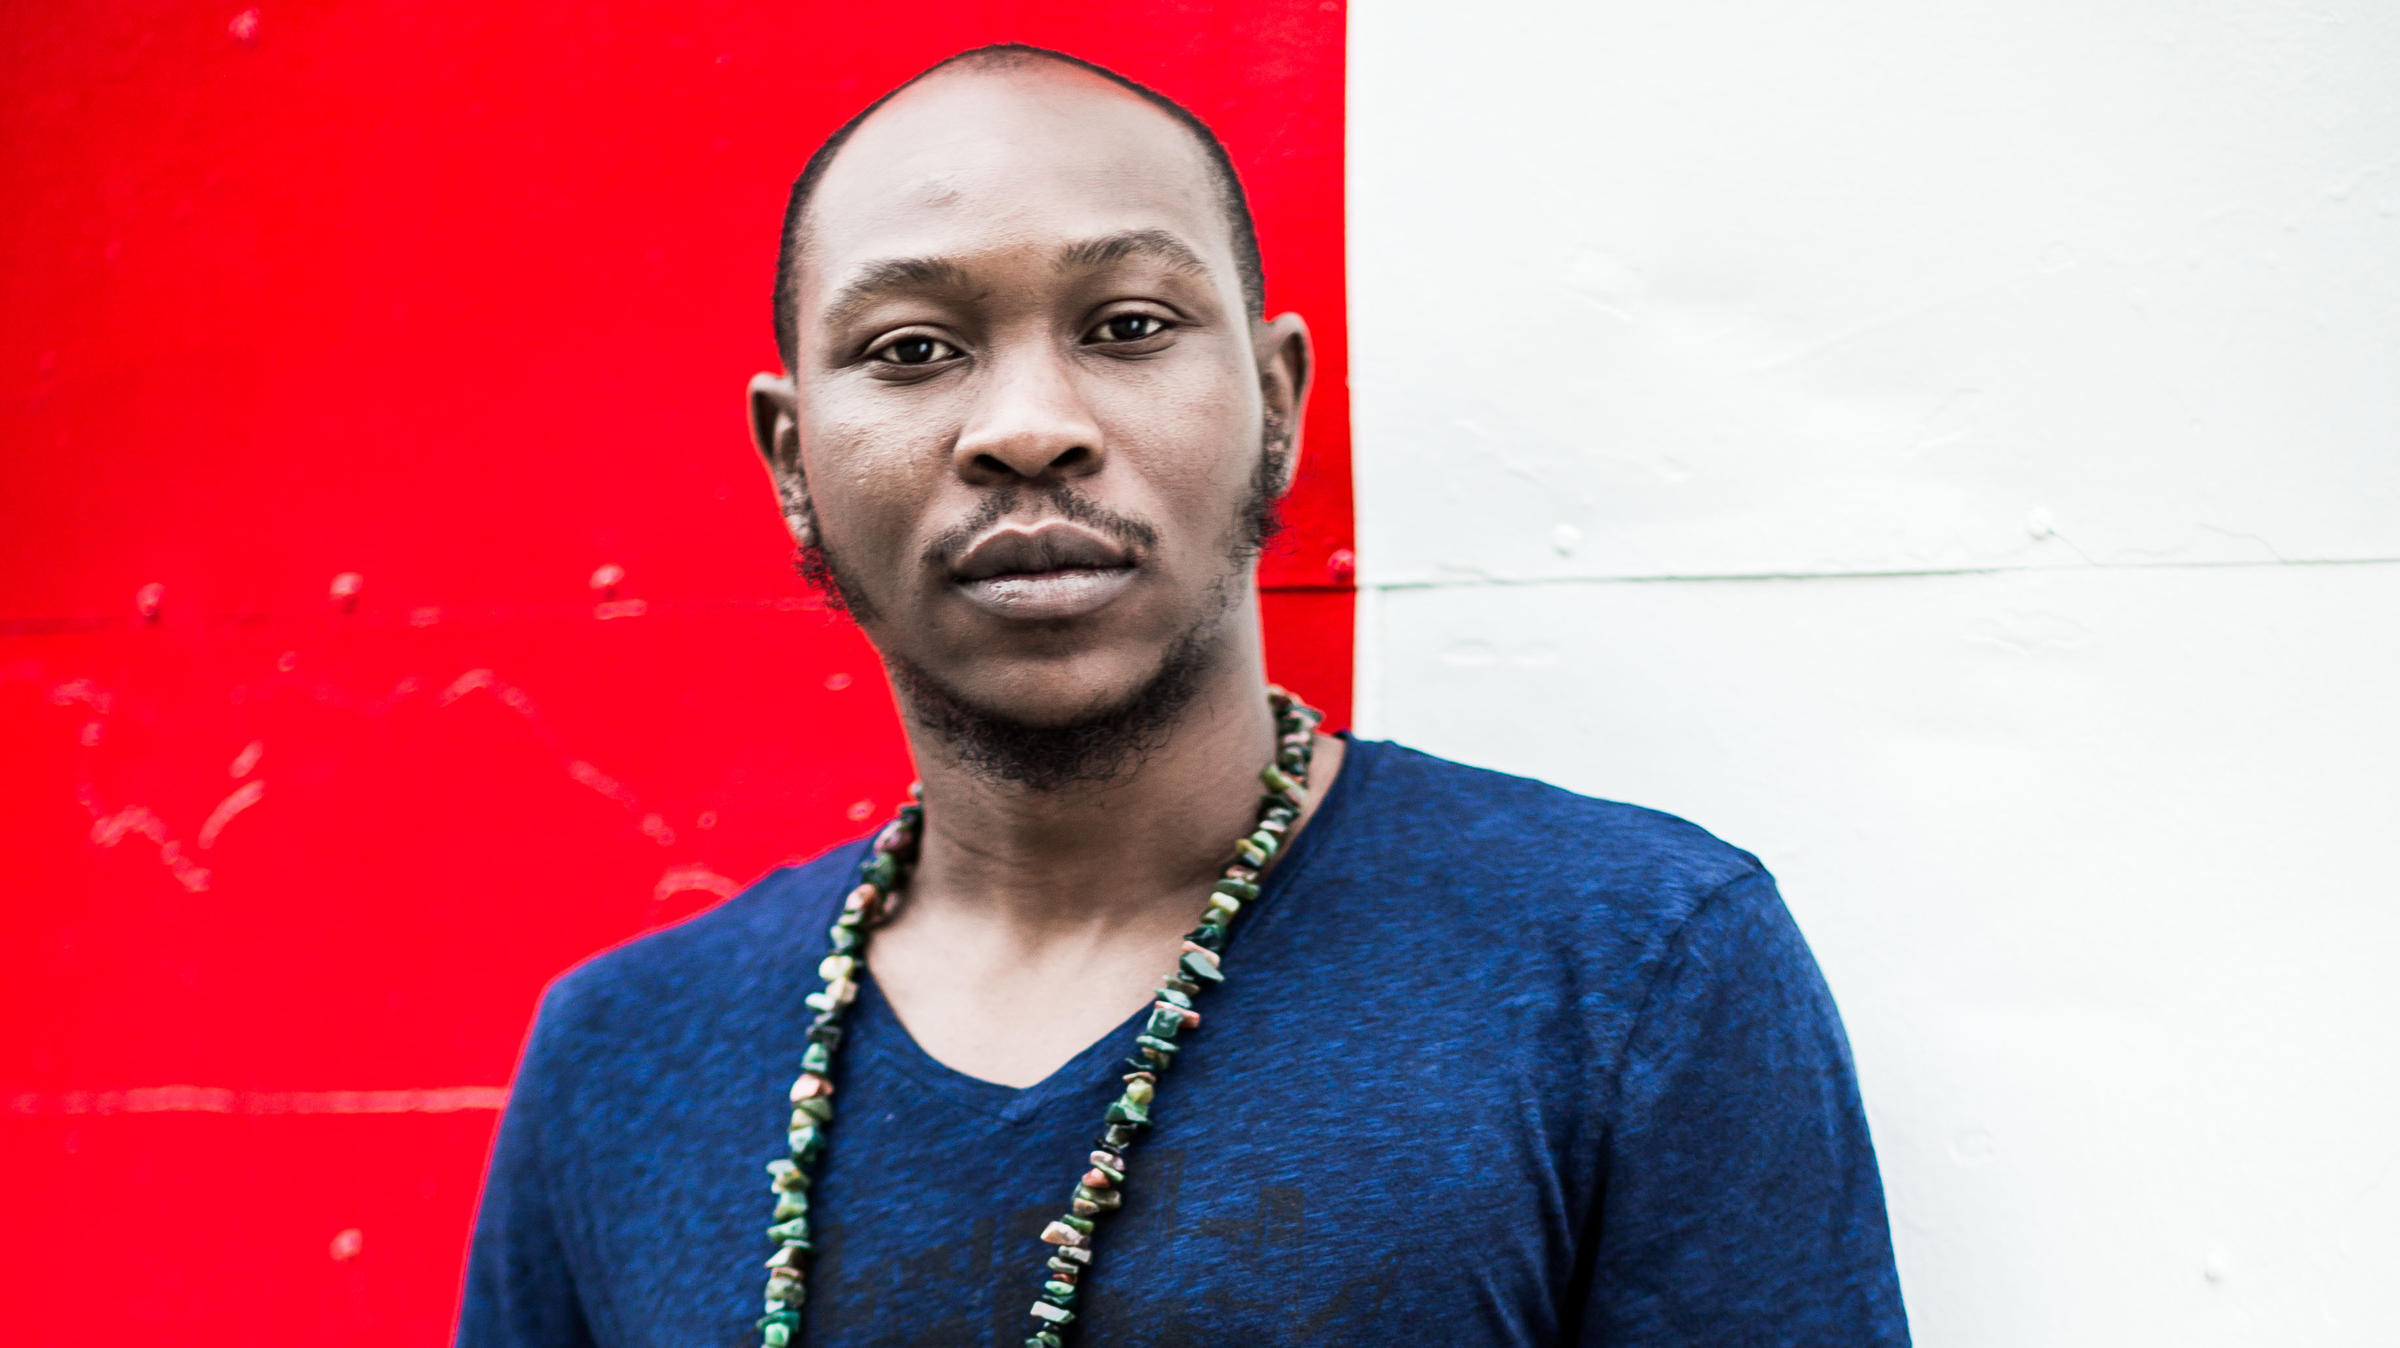 Seun Kuti Encourages The Assault On Nigerian Politicians In Other Countries, Shows Interest In Taking Part